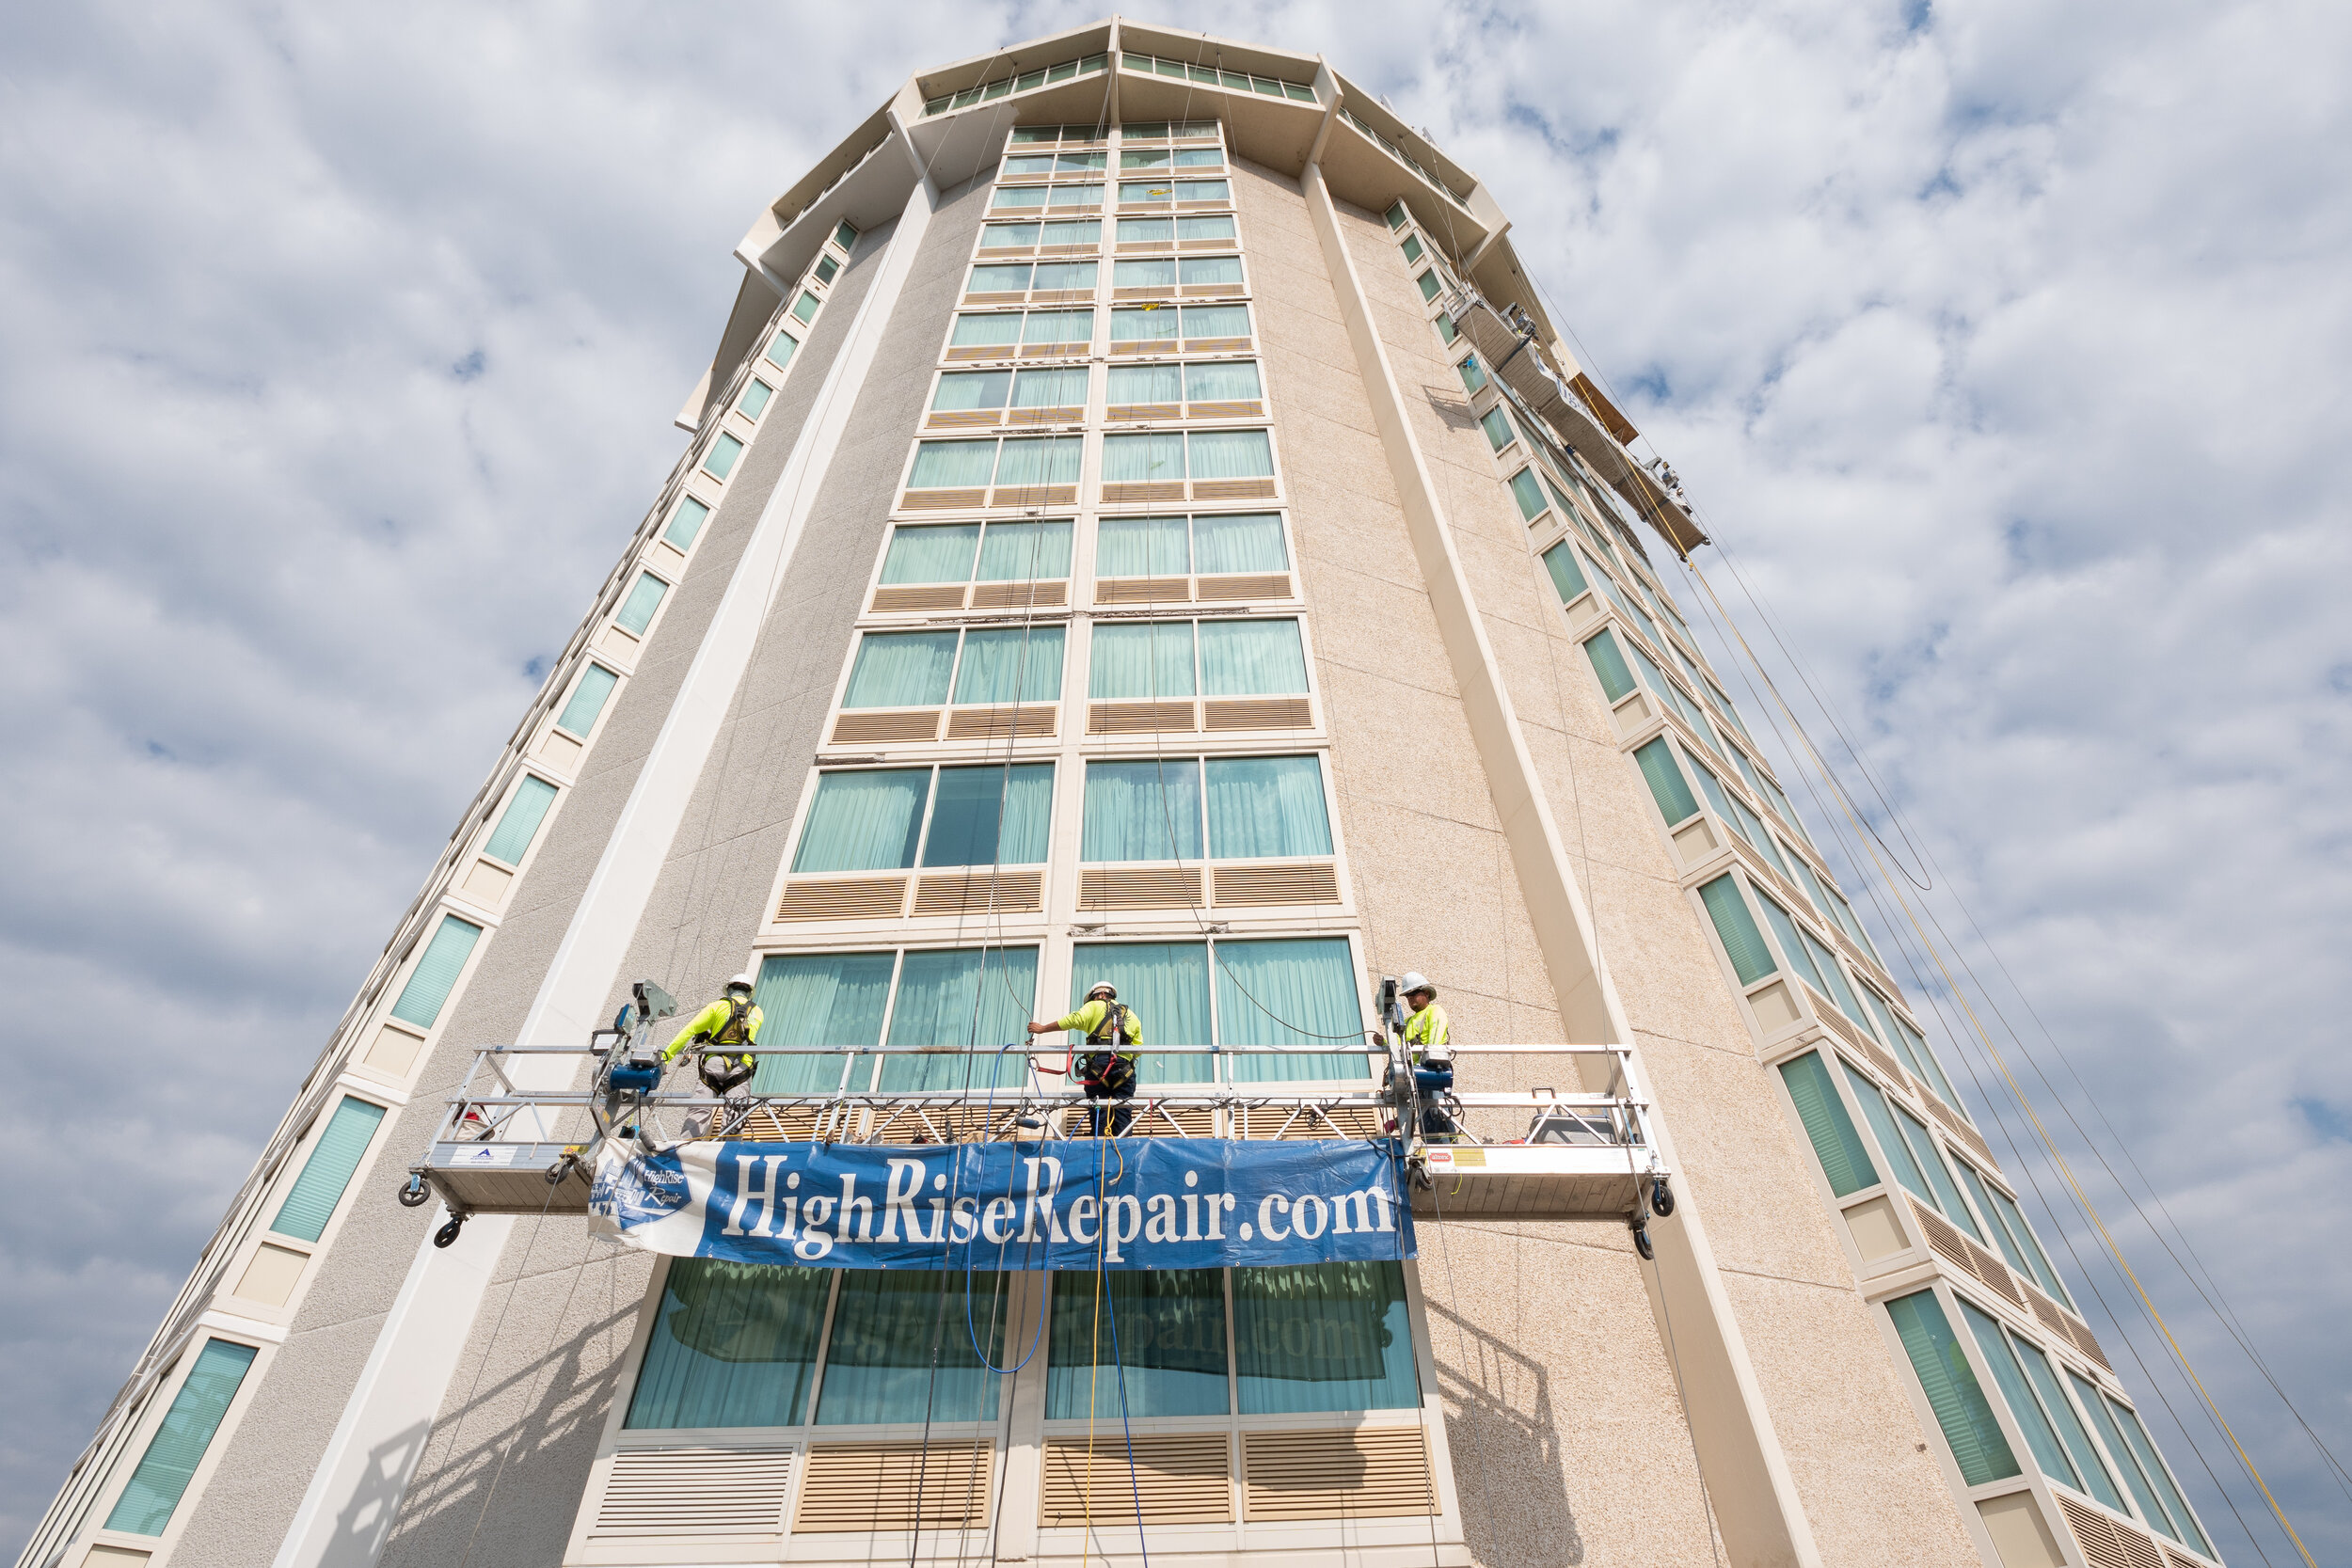 Commercial Waterproofing and Caulking - Waterproofing your commercial building is essential for maintaining and protecting the integrity of your structure. HighRise Repair's commercial waterproofing services include the expert installation of only the highest quality waterproofing materials to prevent the water infiltration of your building.